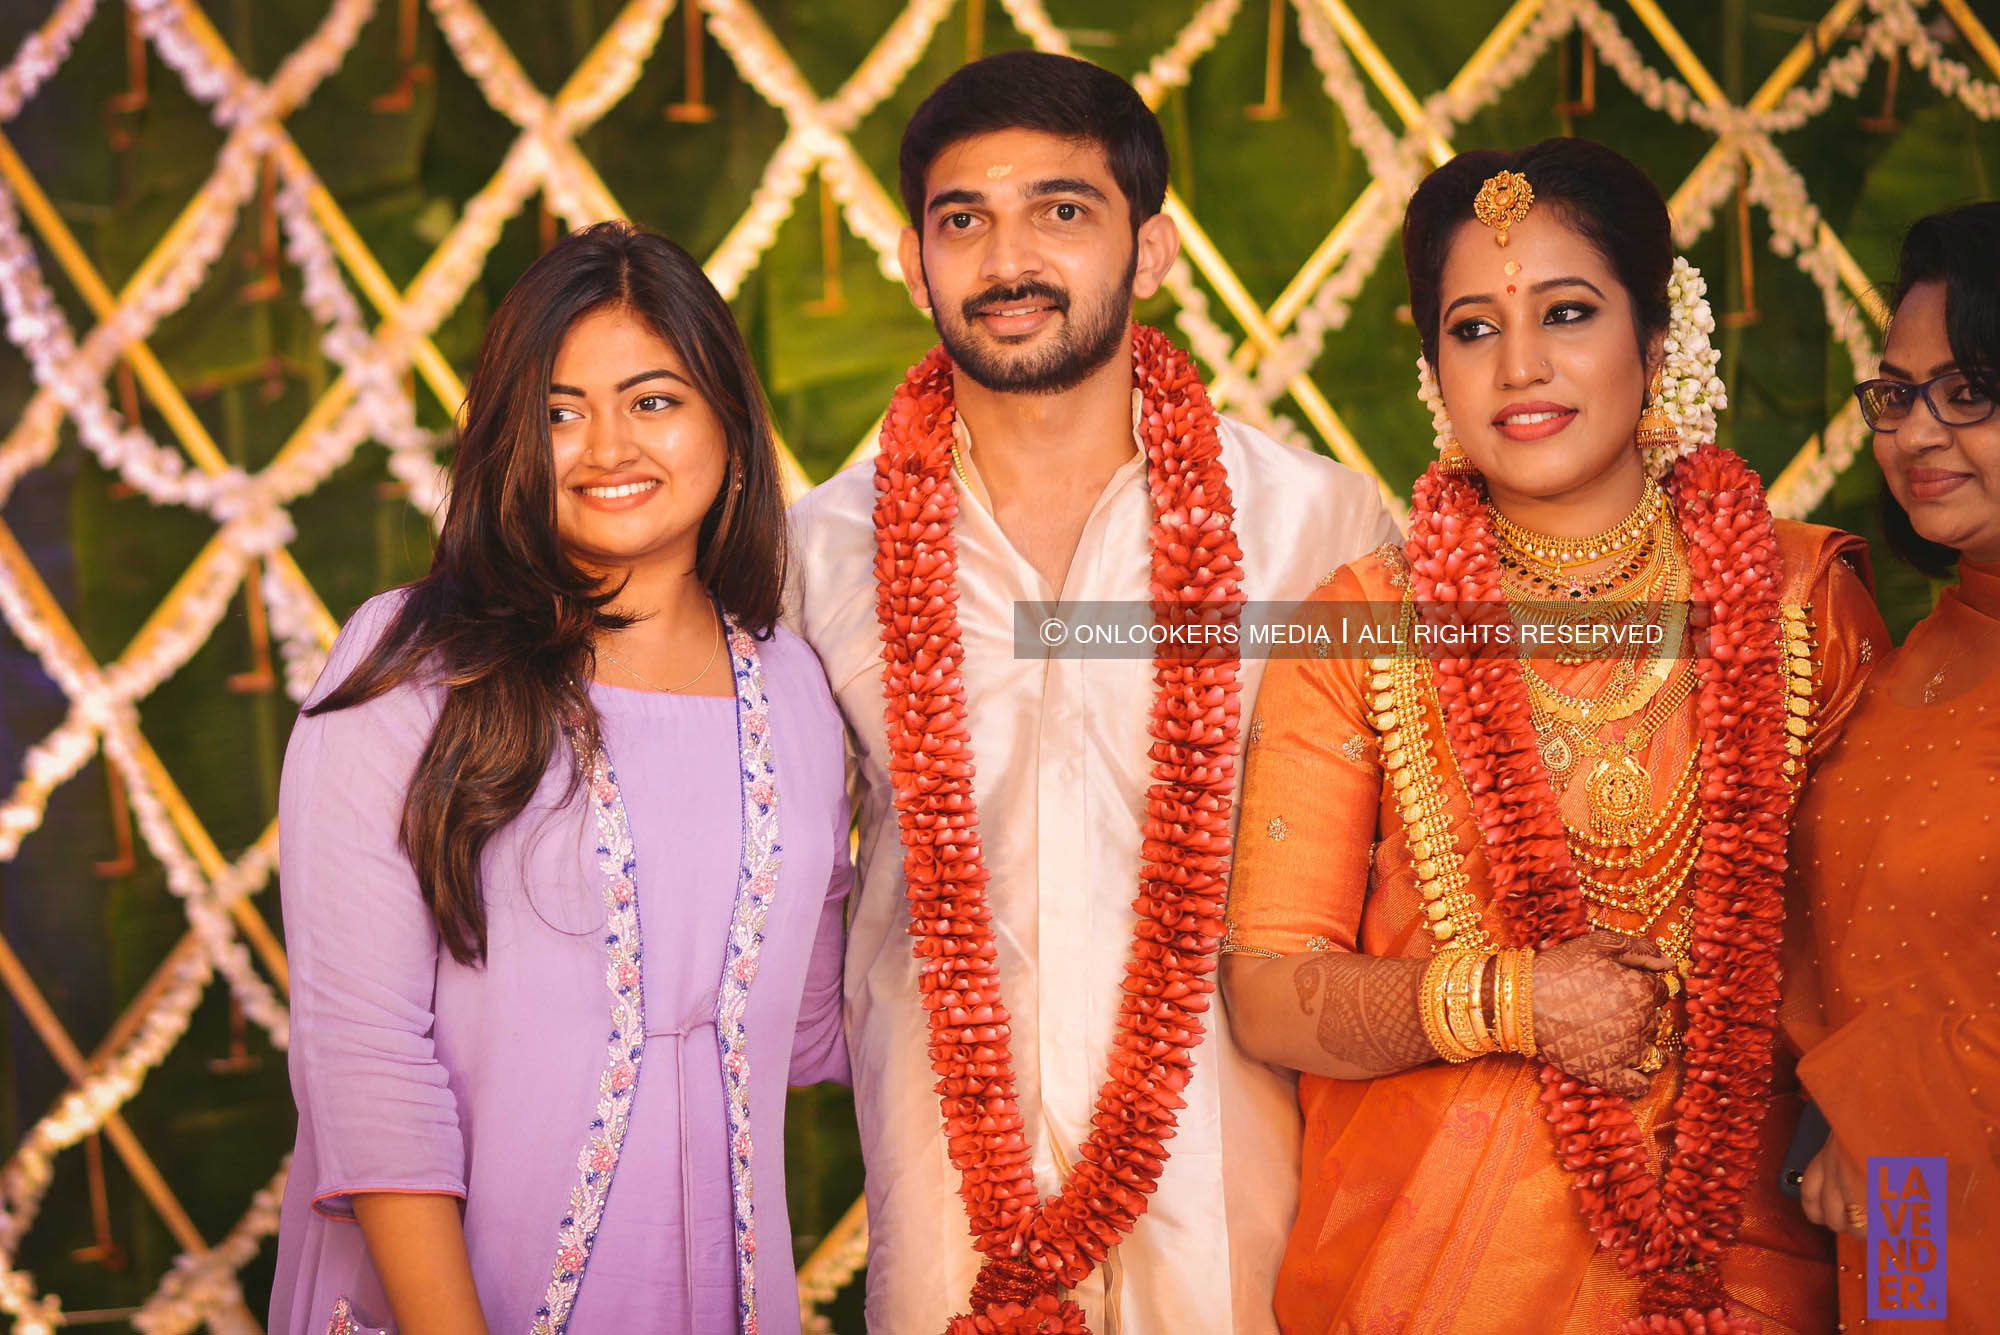 http://onlookersmedia.in/wp-content/uploads/2018/05/sreejith-vijay-wedding-stills-images-87.jpg